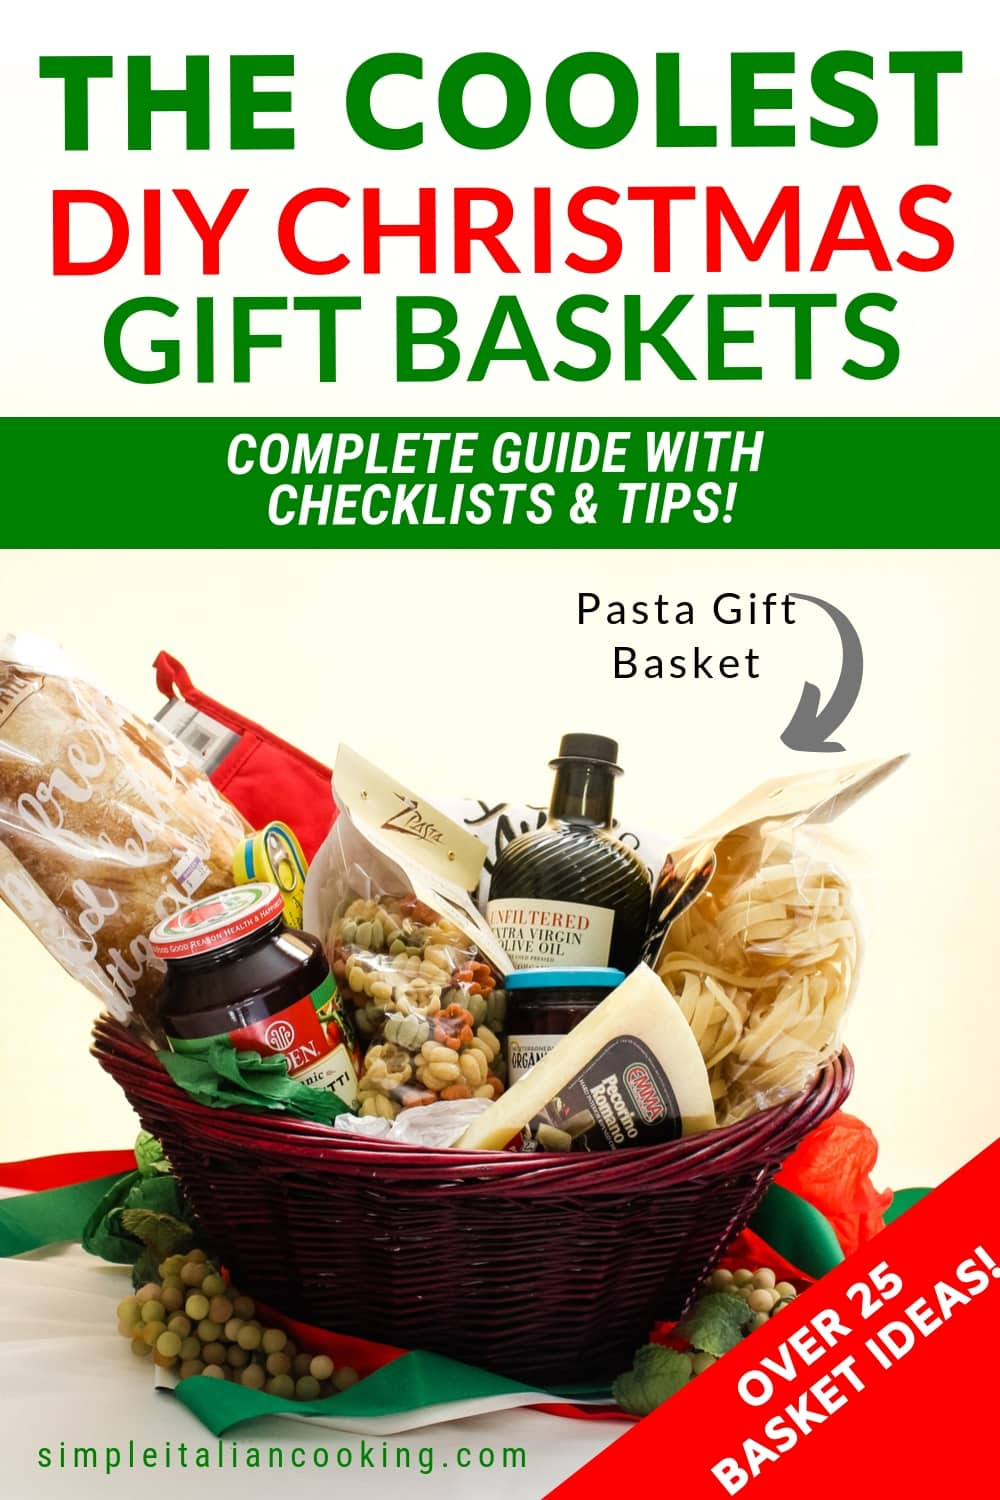 Italian Gift Basket Ideas: The Ultimate Guide for Christmas & Beyond